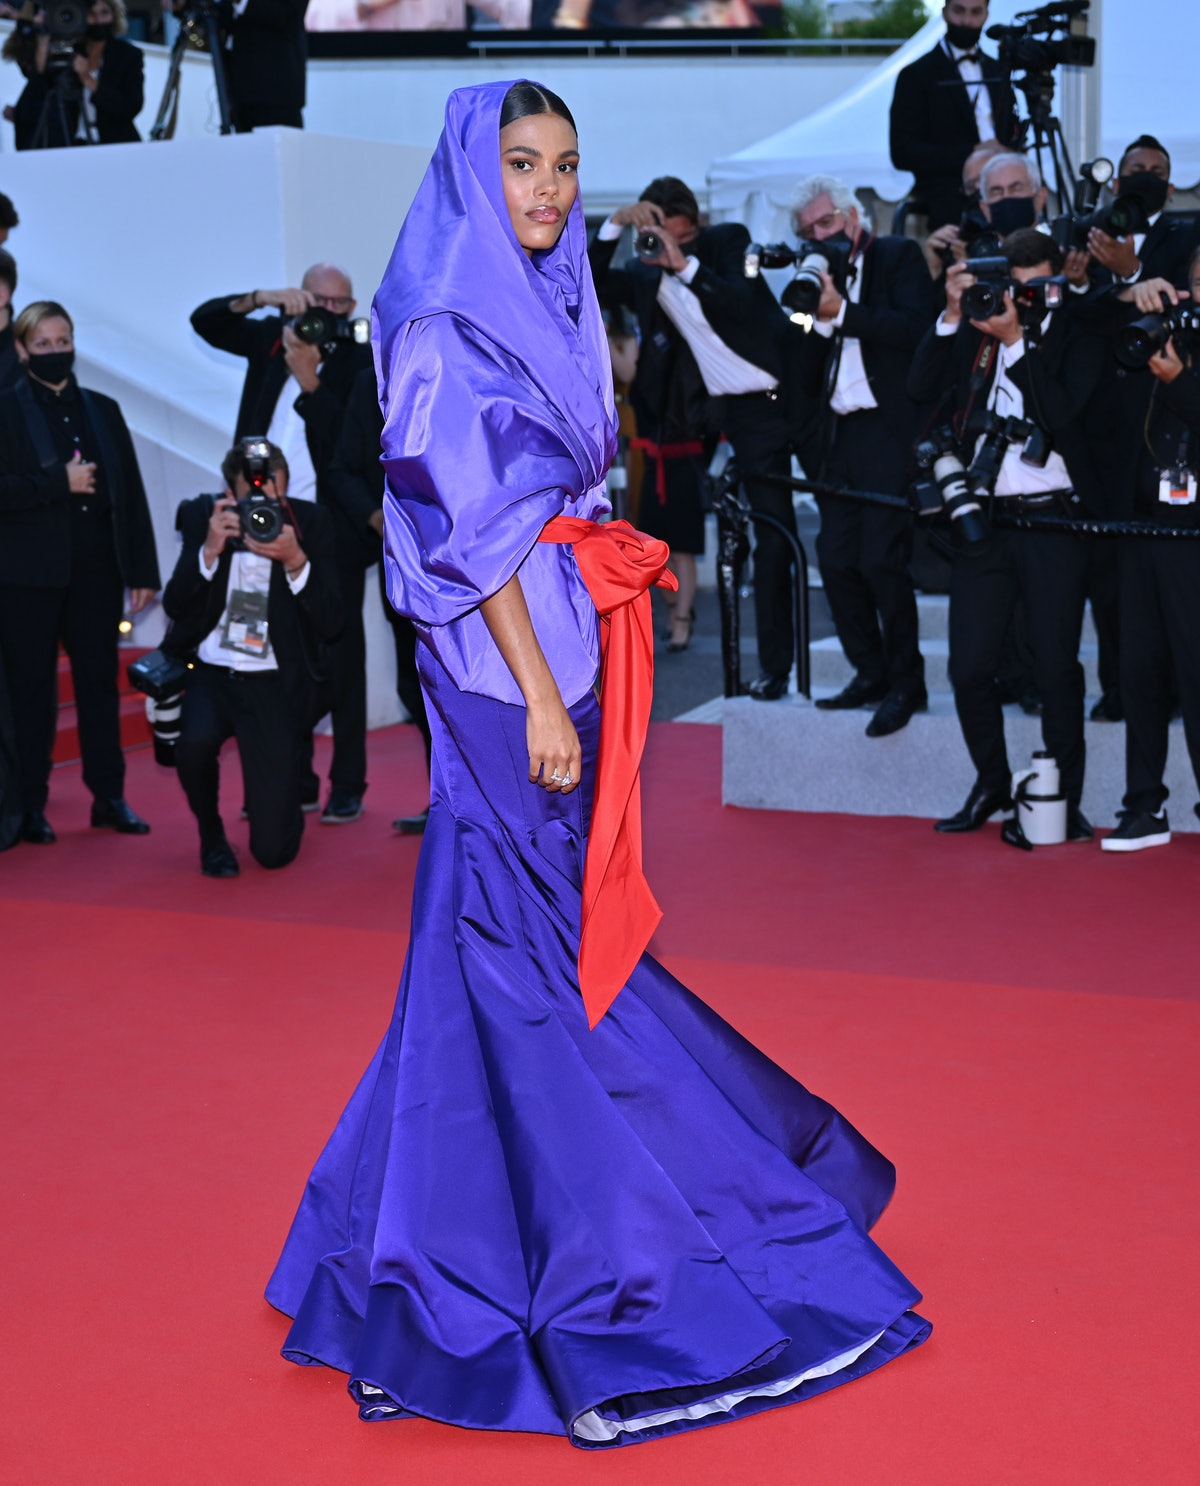 CANNES, FRANCE - JULY 09: French model Tina Kunakey arrives for the screening of The film âBenedetta' in the competition at the 74th annual Cannes Film Festival in Cannes, France on July 09, 2021 (Photo by Mustafa Yalcin/Anadolu Agency via Getty Images)